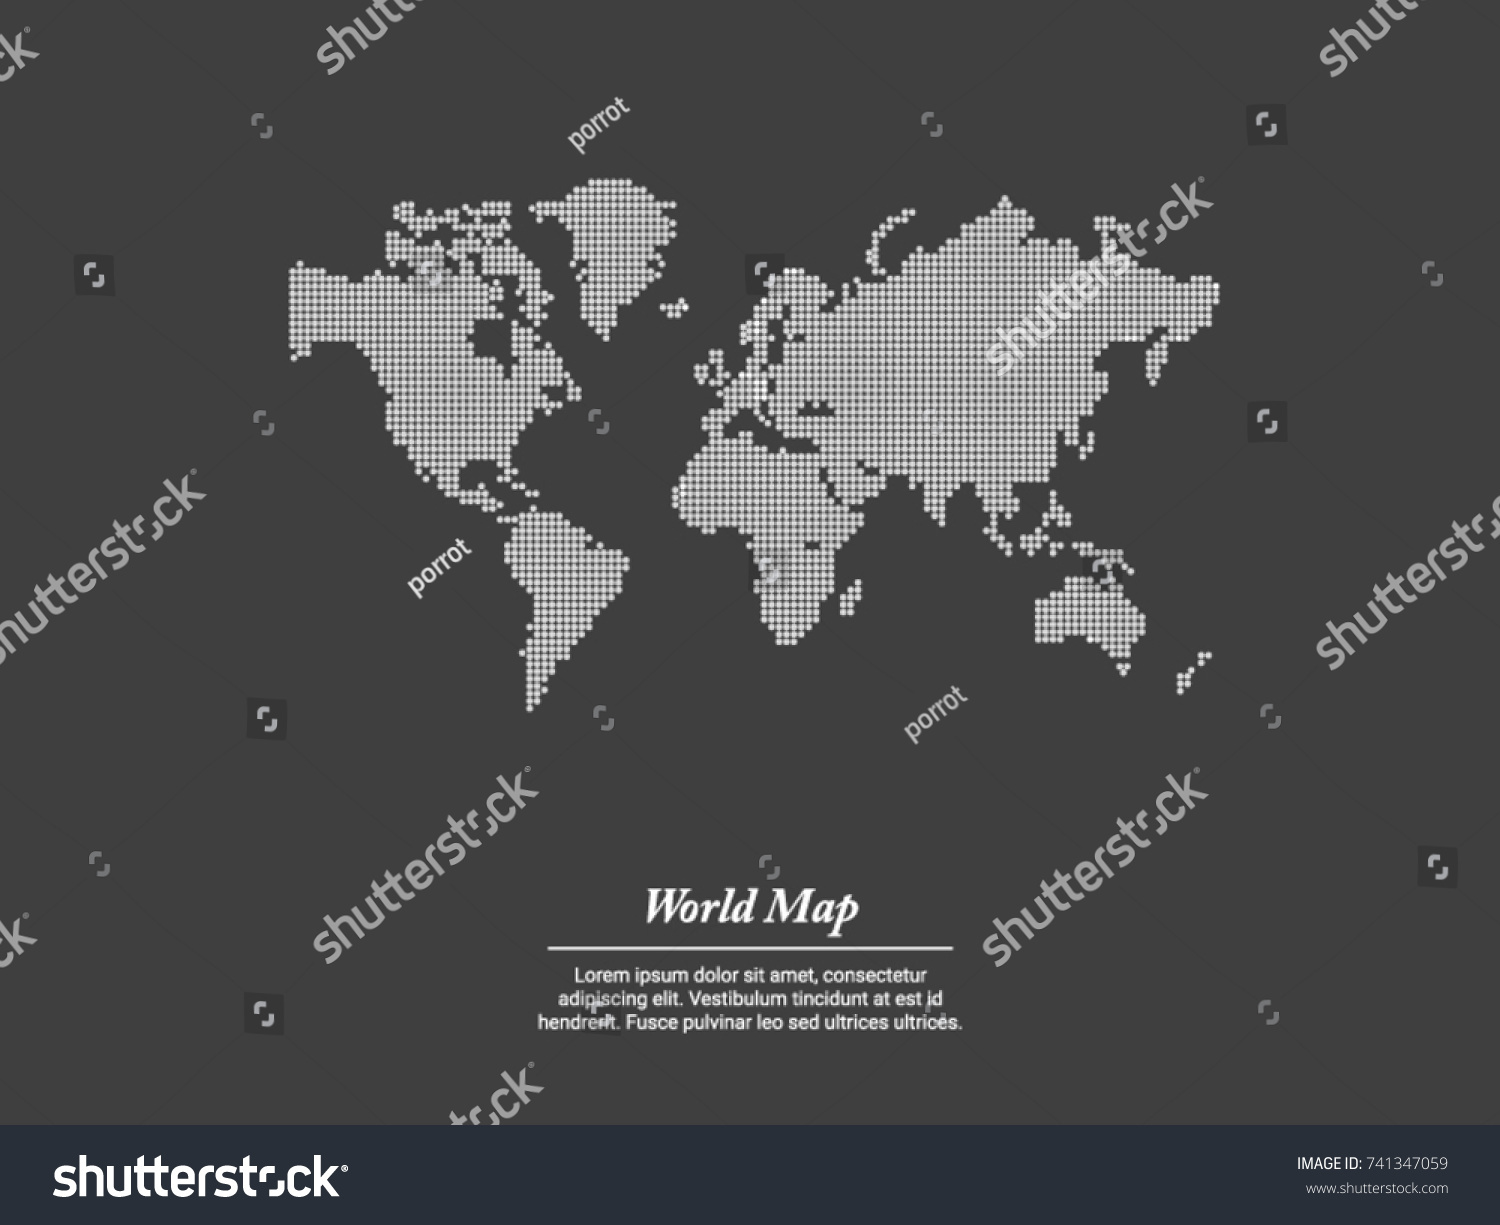 Best popular world map vector globe vectores en stock 741347059 best popular world map vector globe template for anything world wide website design gumiabroncs Images